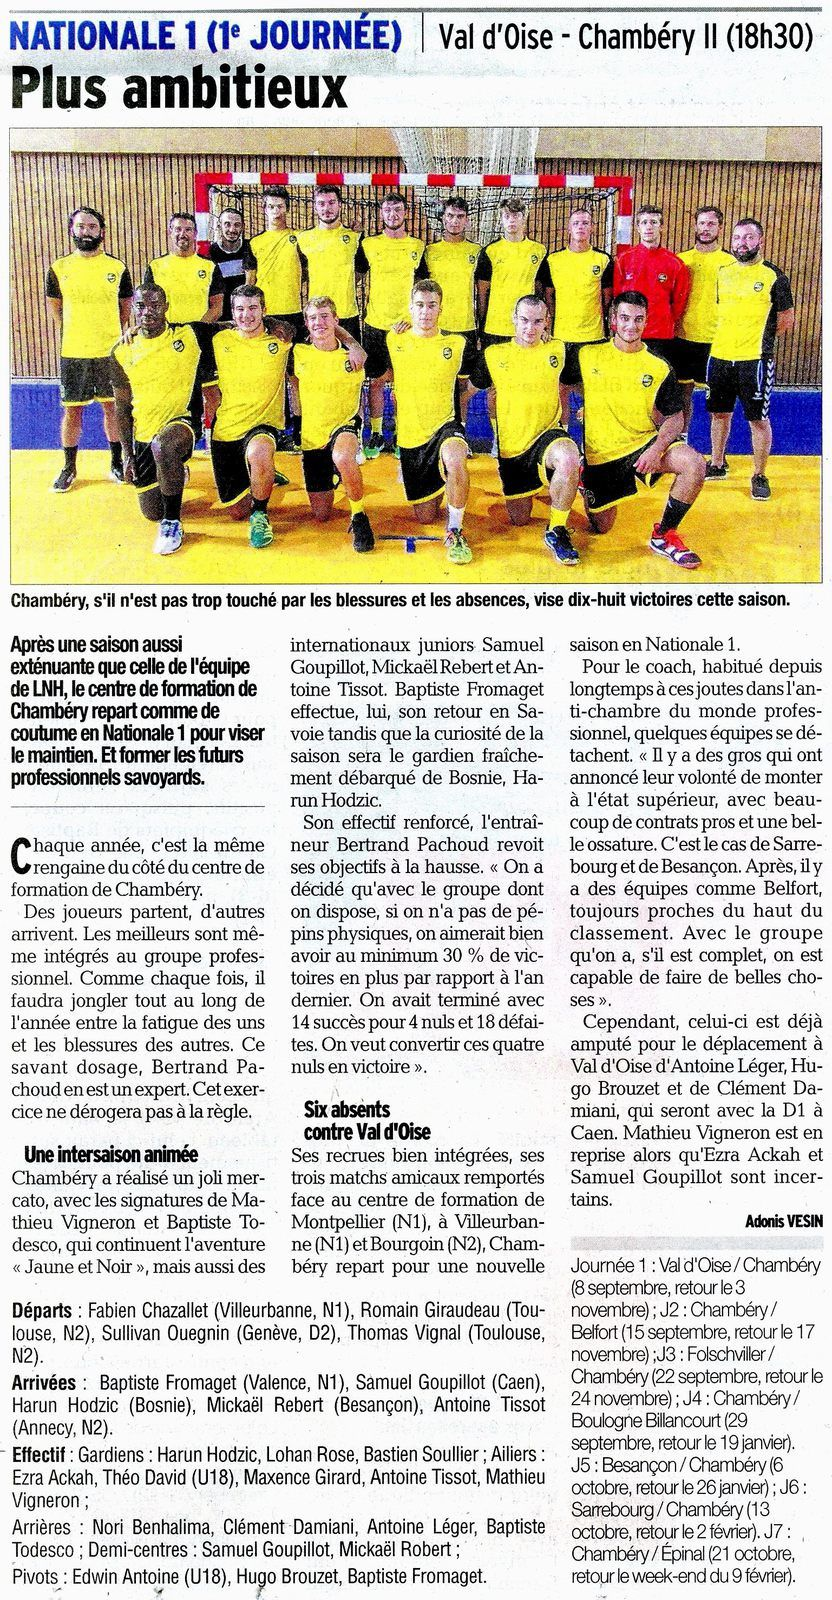 N1 ELITE VAL D'OISE - CHAMBERY2 article du DL 8 septembre 2018